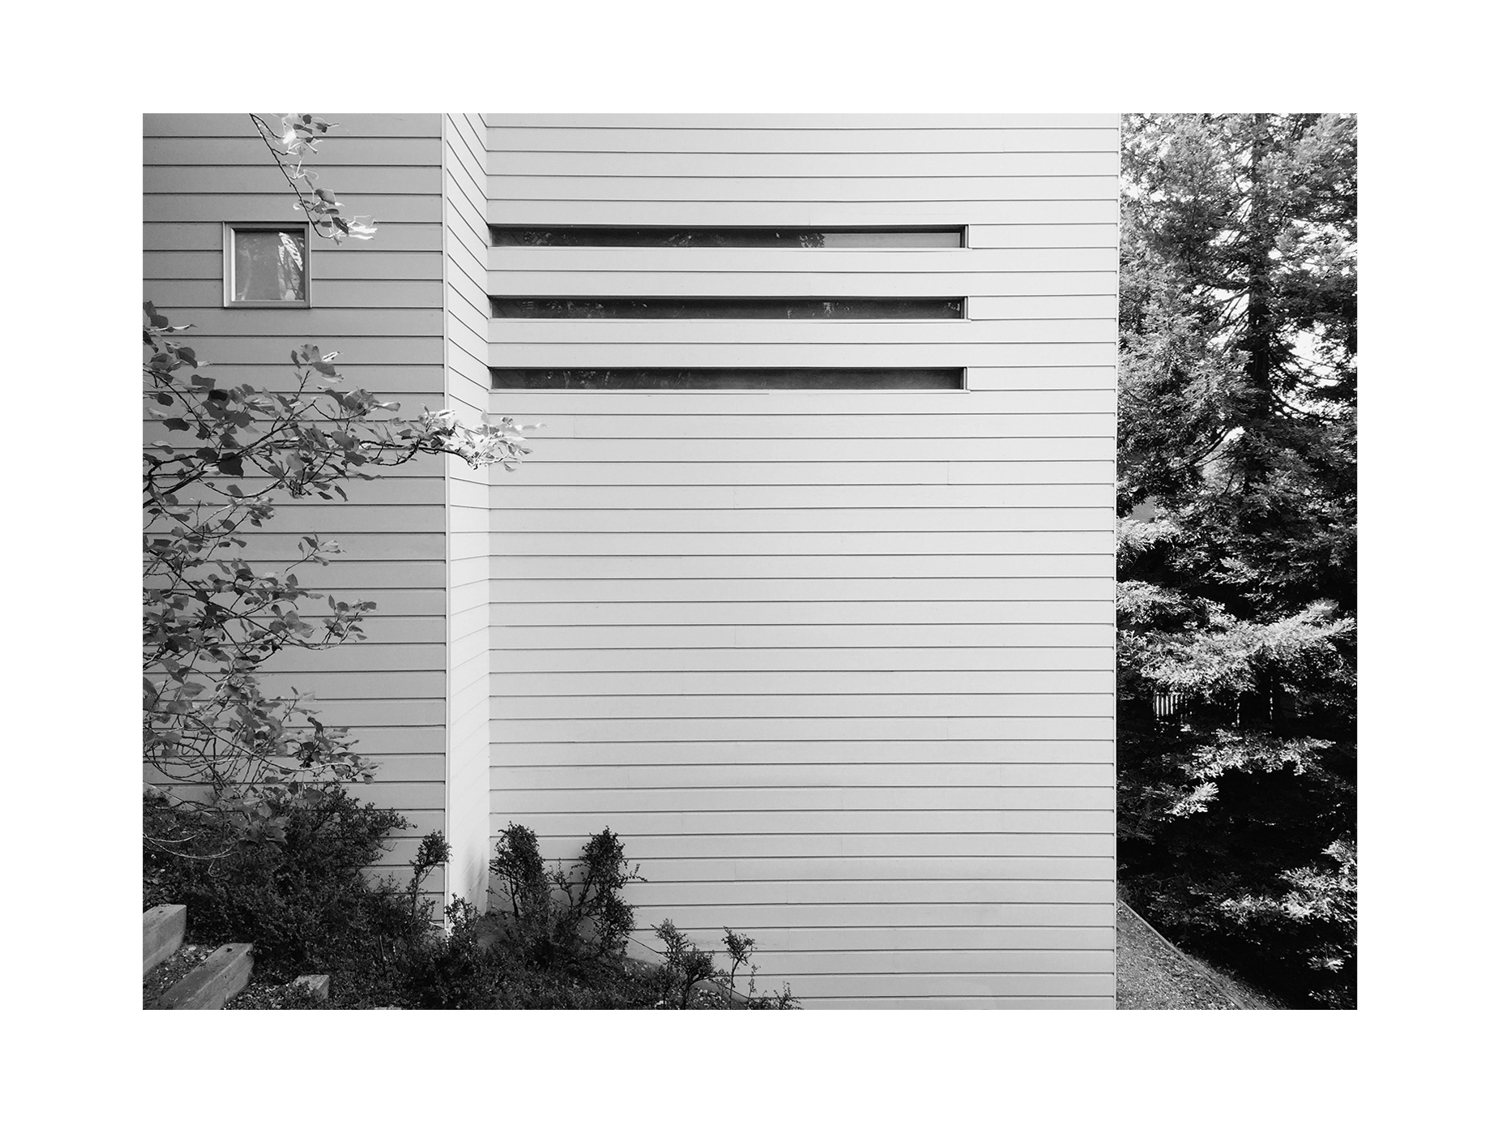 UPPER ROCKRIDGE HOUSE_01 SCALED.jpg